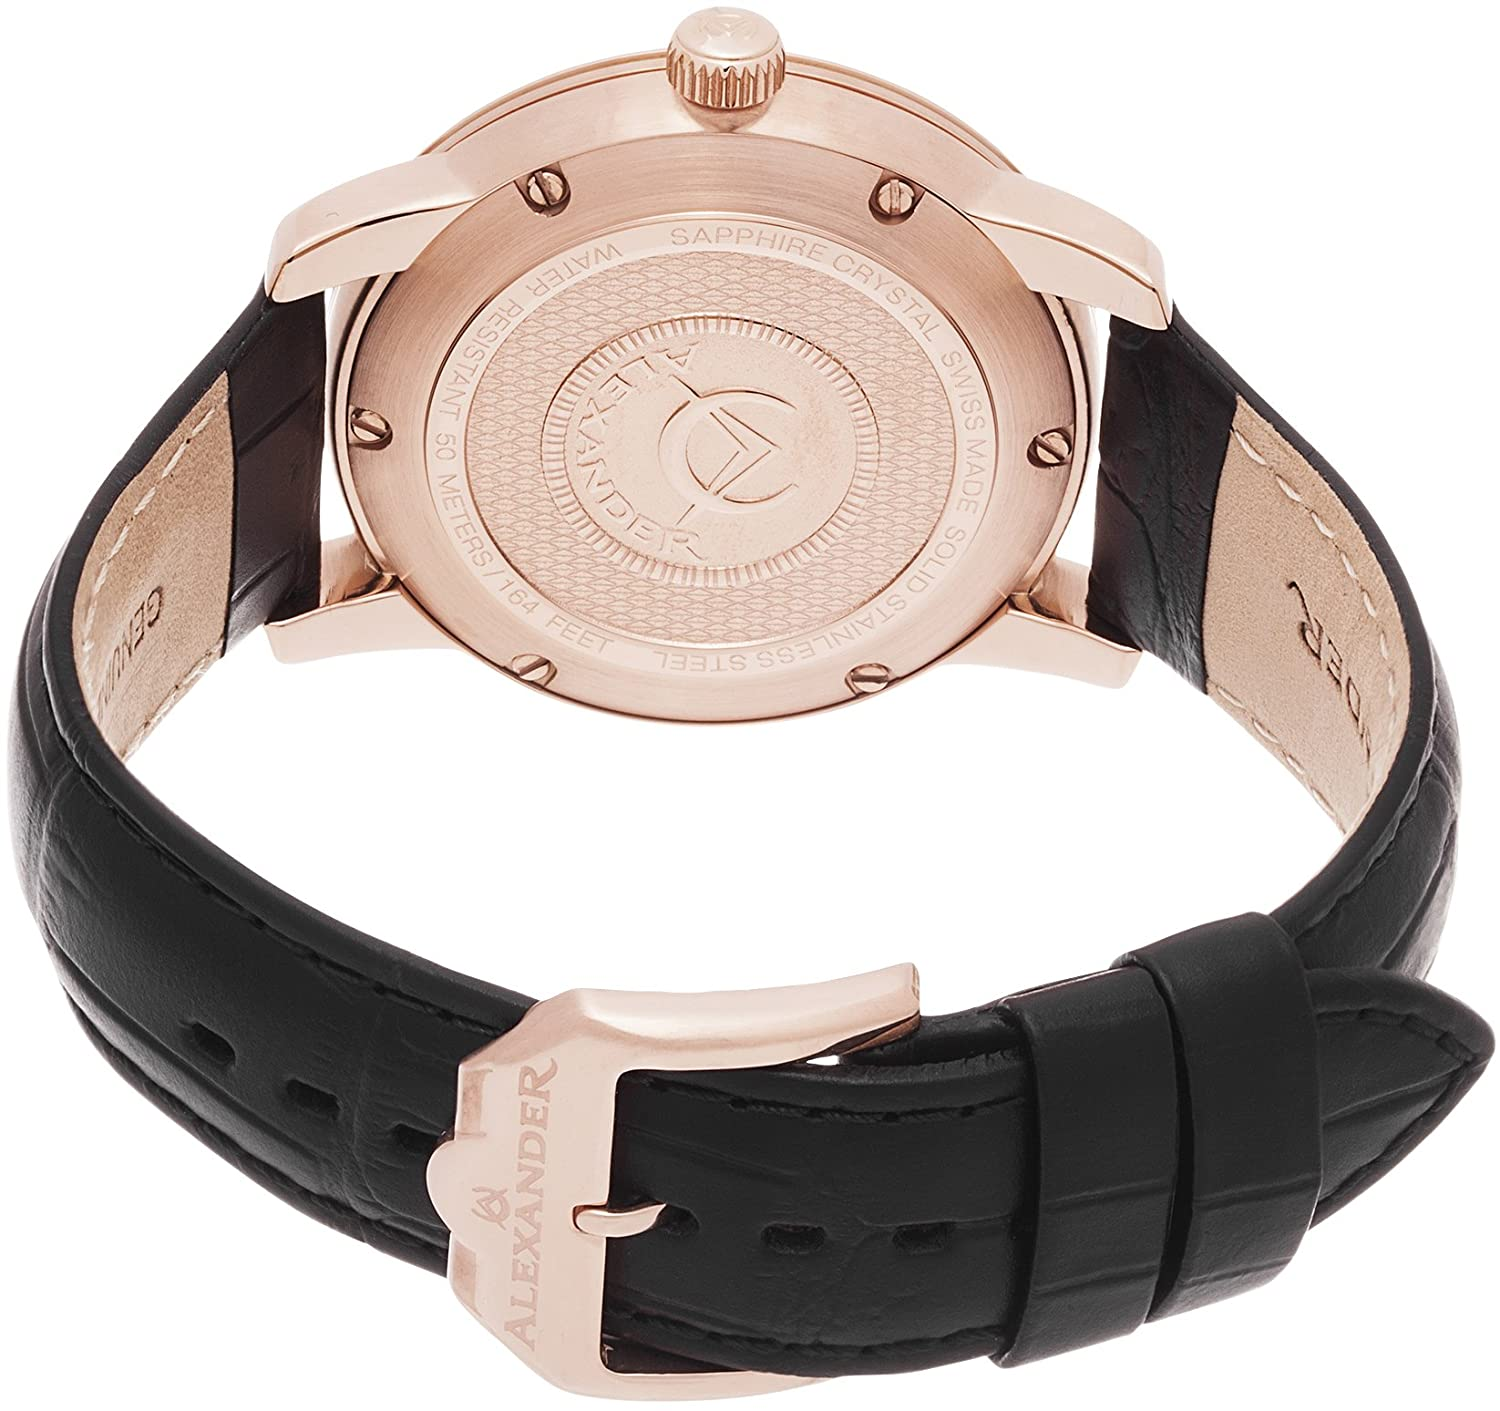 Alexander Heroic Macedon Mens Rose Gold Watch Leather Band – 40mm Analog Black Face with Second Hand Date and Sapphire Crystal – Classic Swiss Made Quartz Dress Watches for Men Gold Tone A111-05